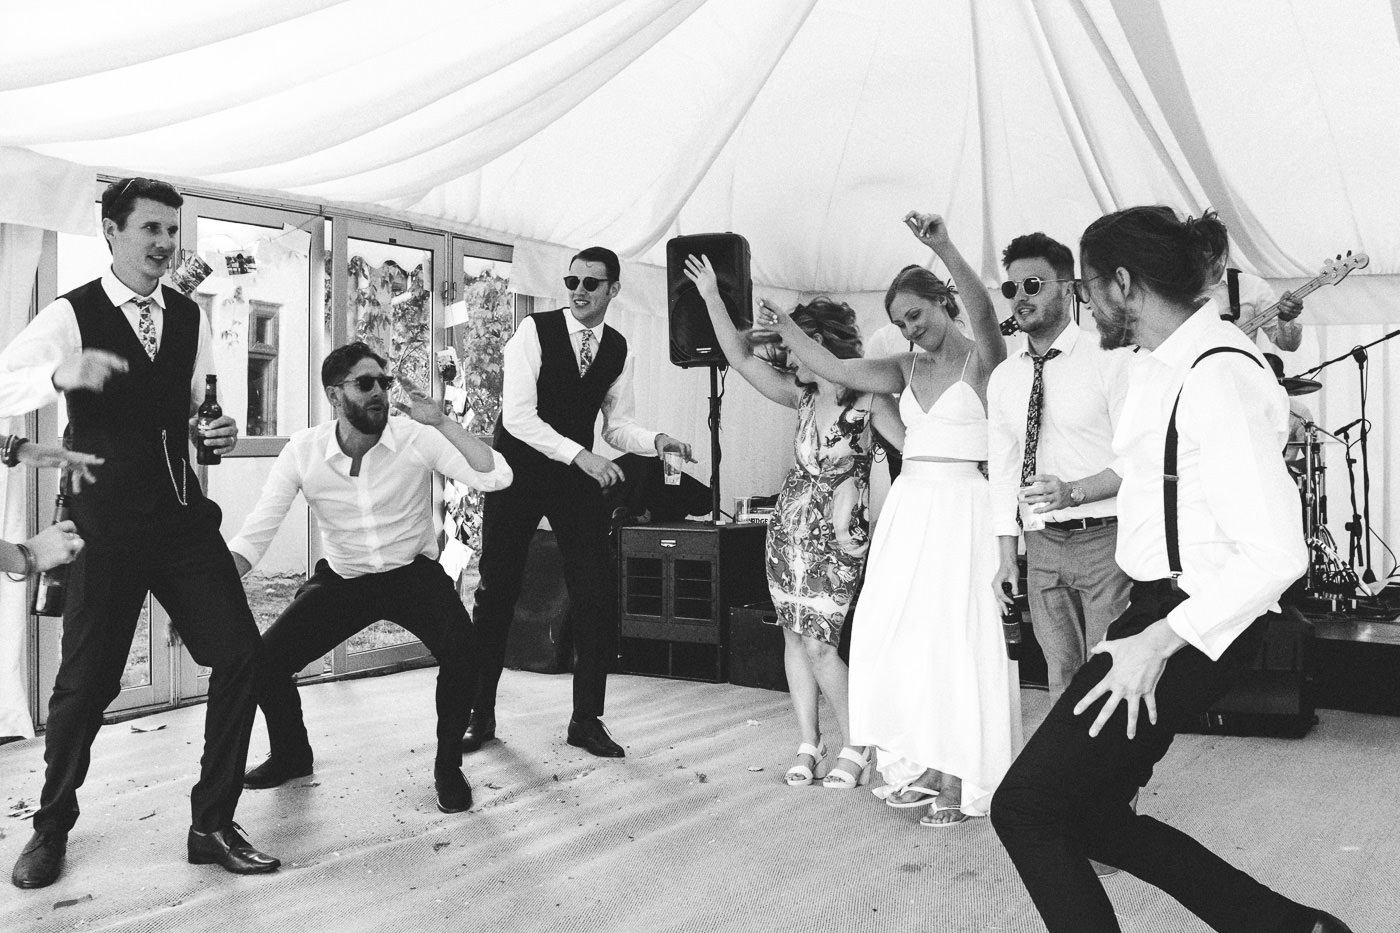 COWBRIDGE GLYNDWR VINEYARD WEDDING PHOTOGRAPHY CARDIFF SOUTH WALES 094